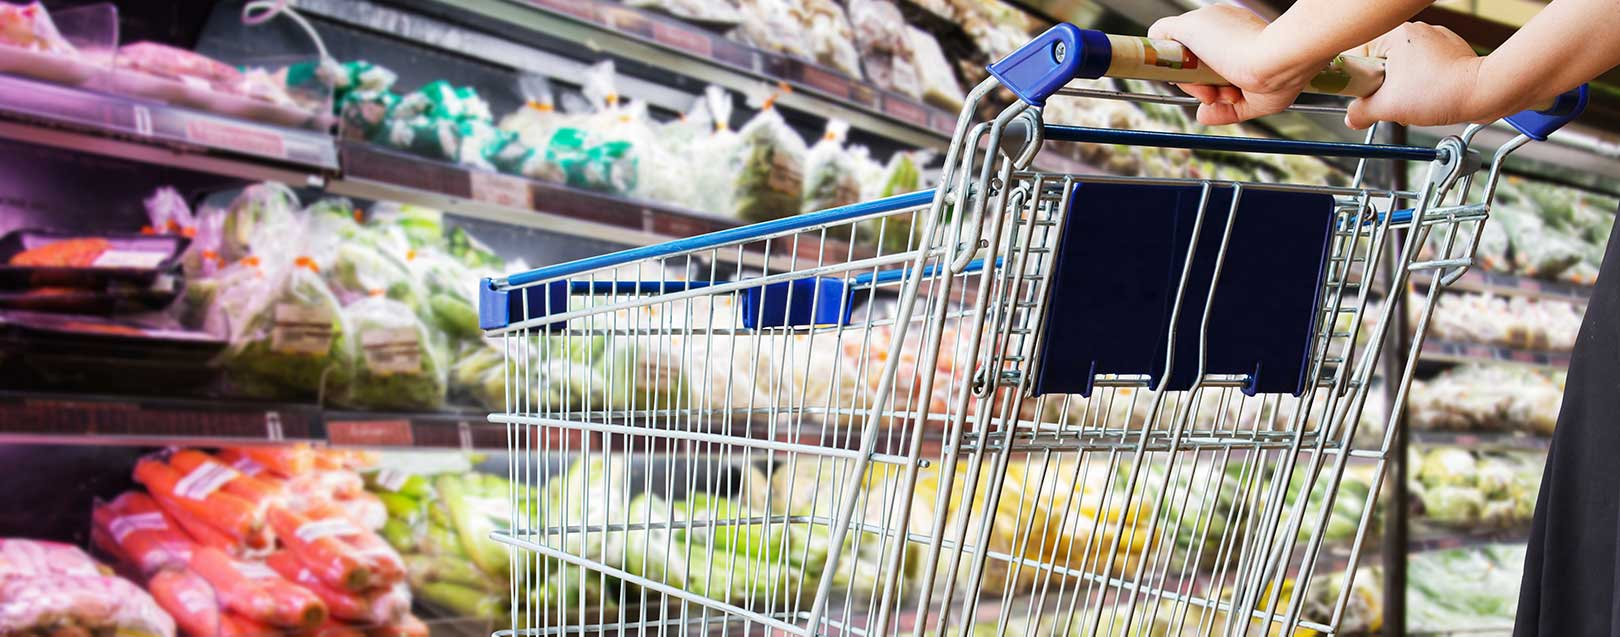 Retail inflation falls to 2.99% in April on lower food prices